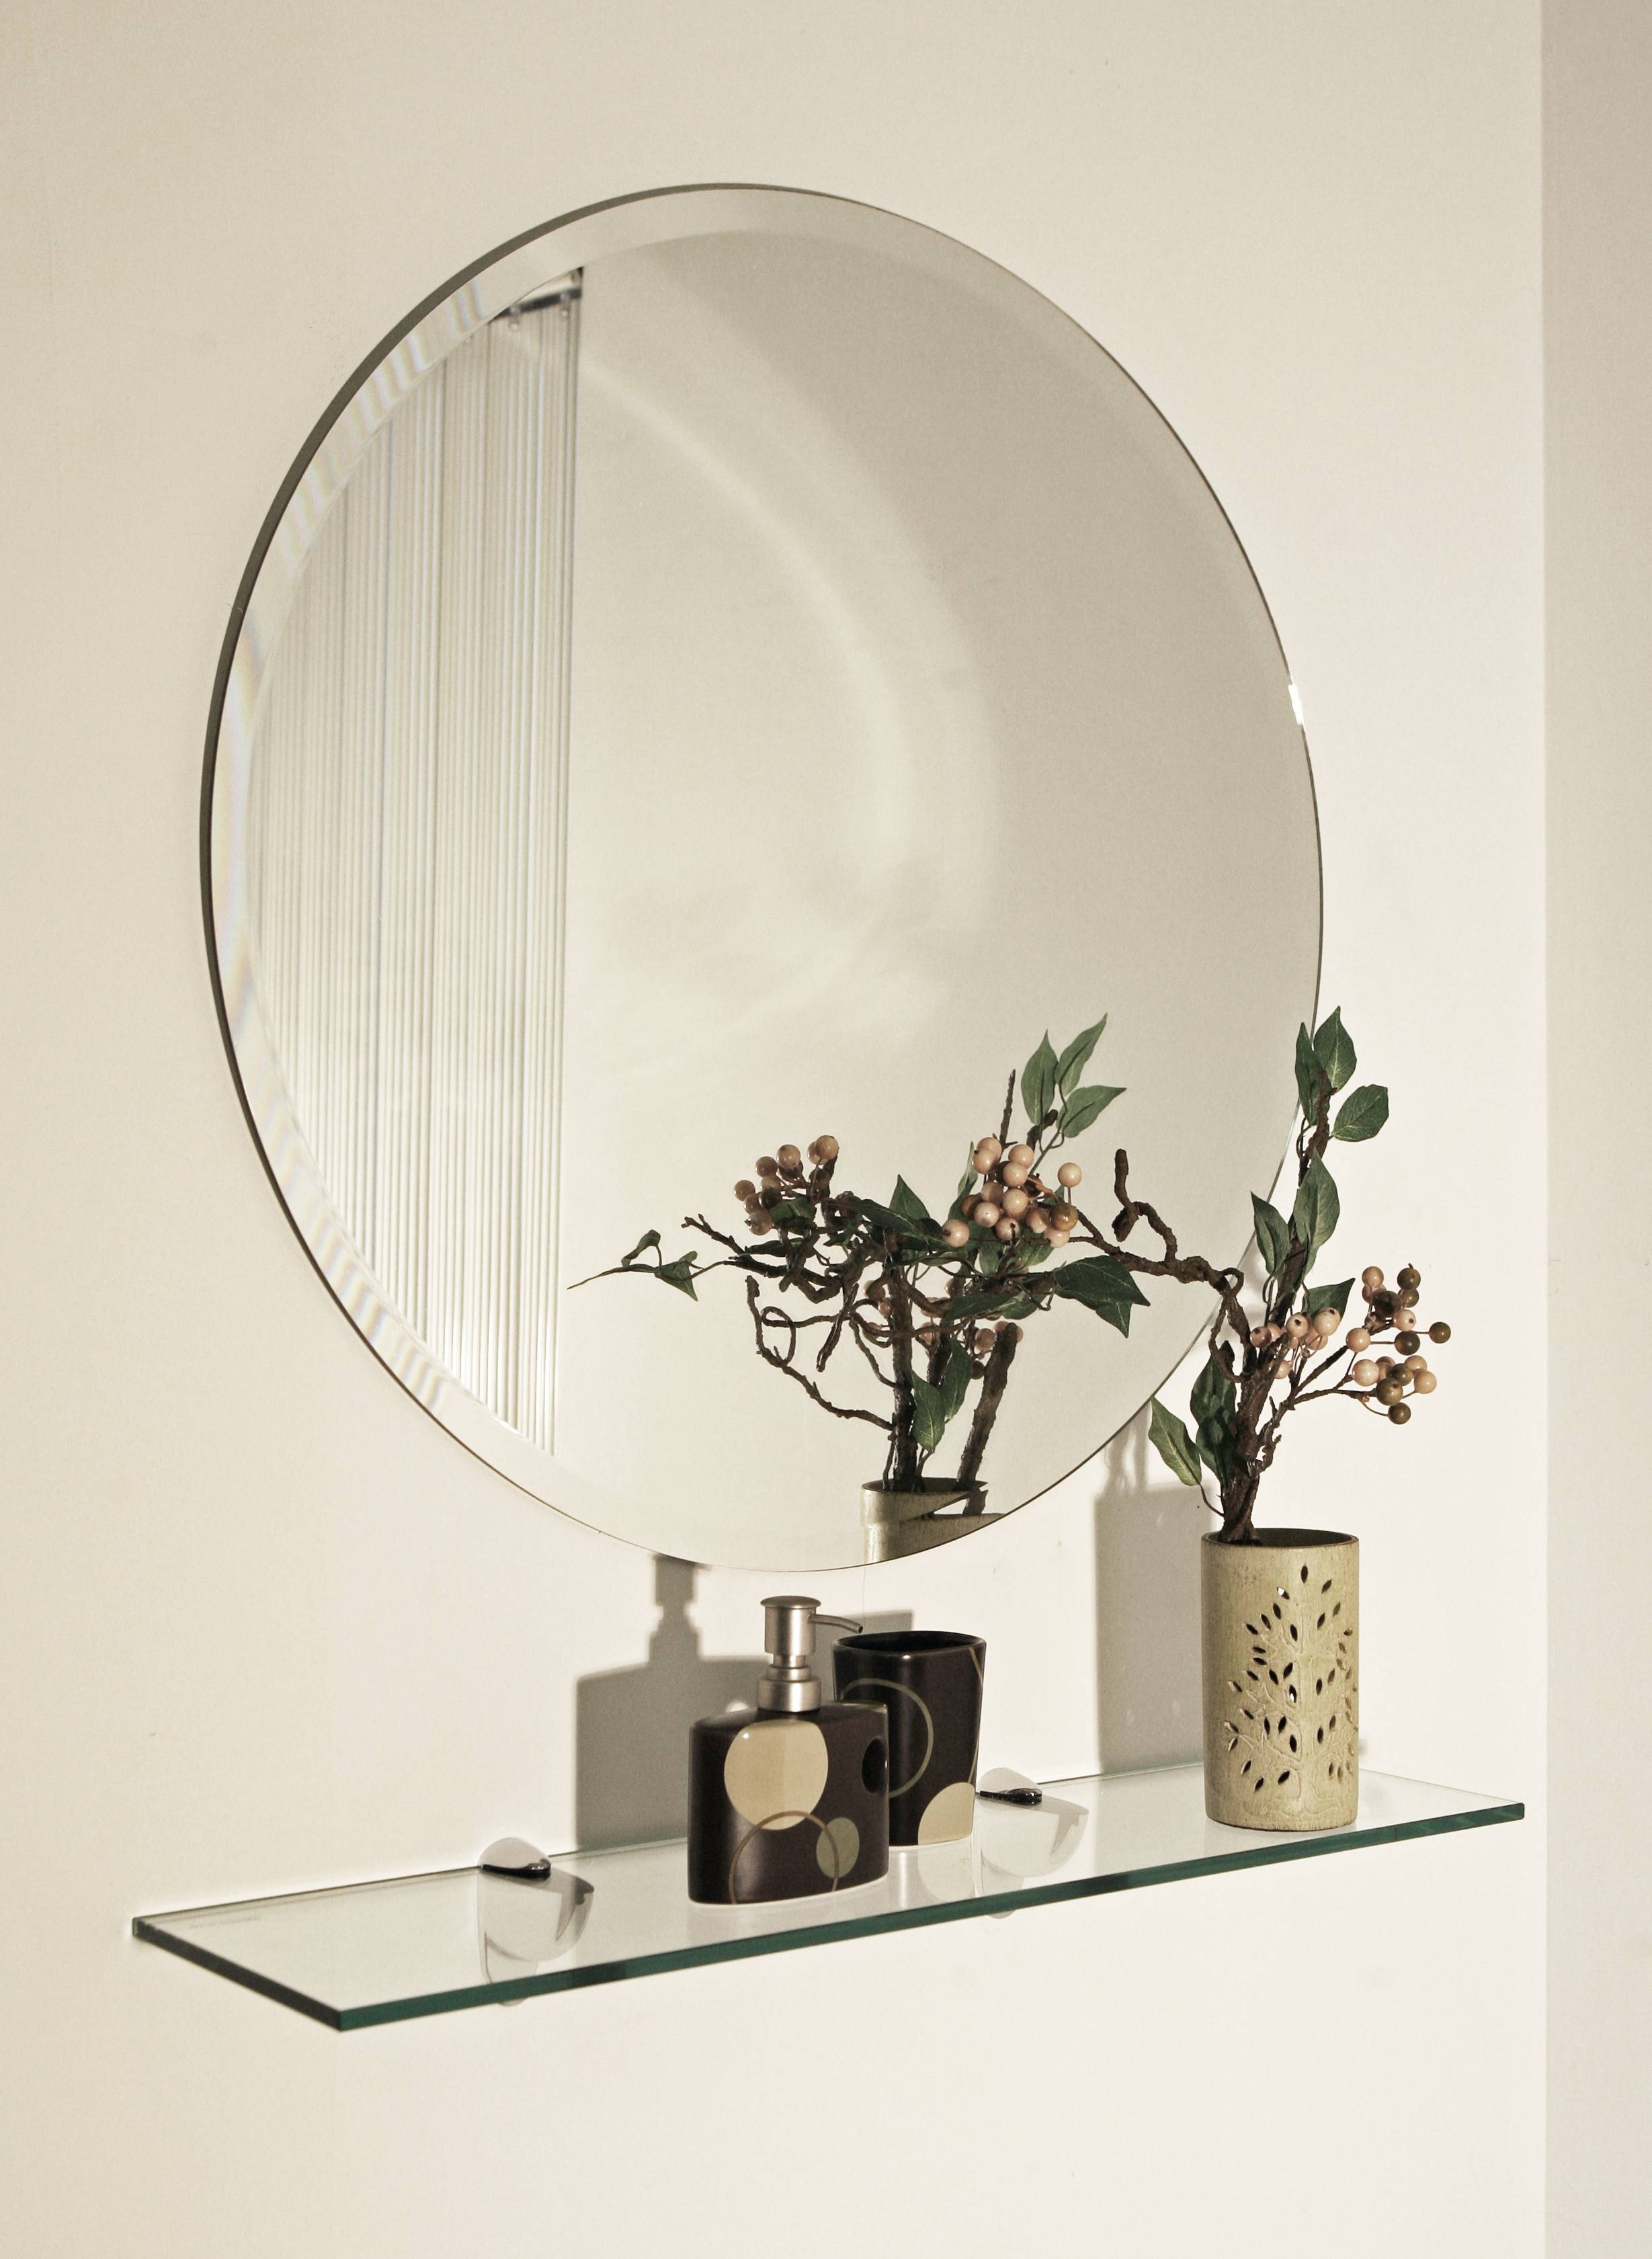 Circular Custom Cut Mirror Glass - Alltrade Glass inside Round Bevelled Mirrors (Image 5 of 25)